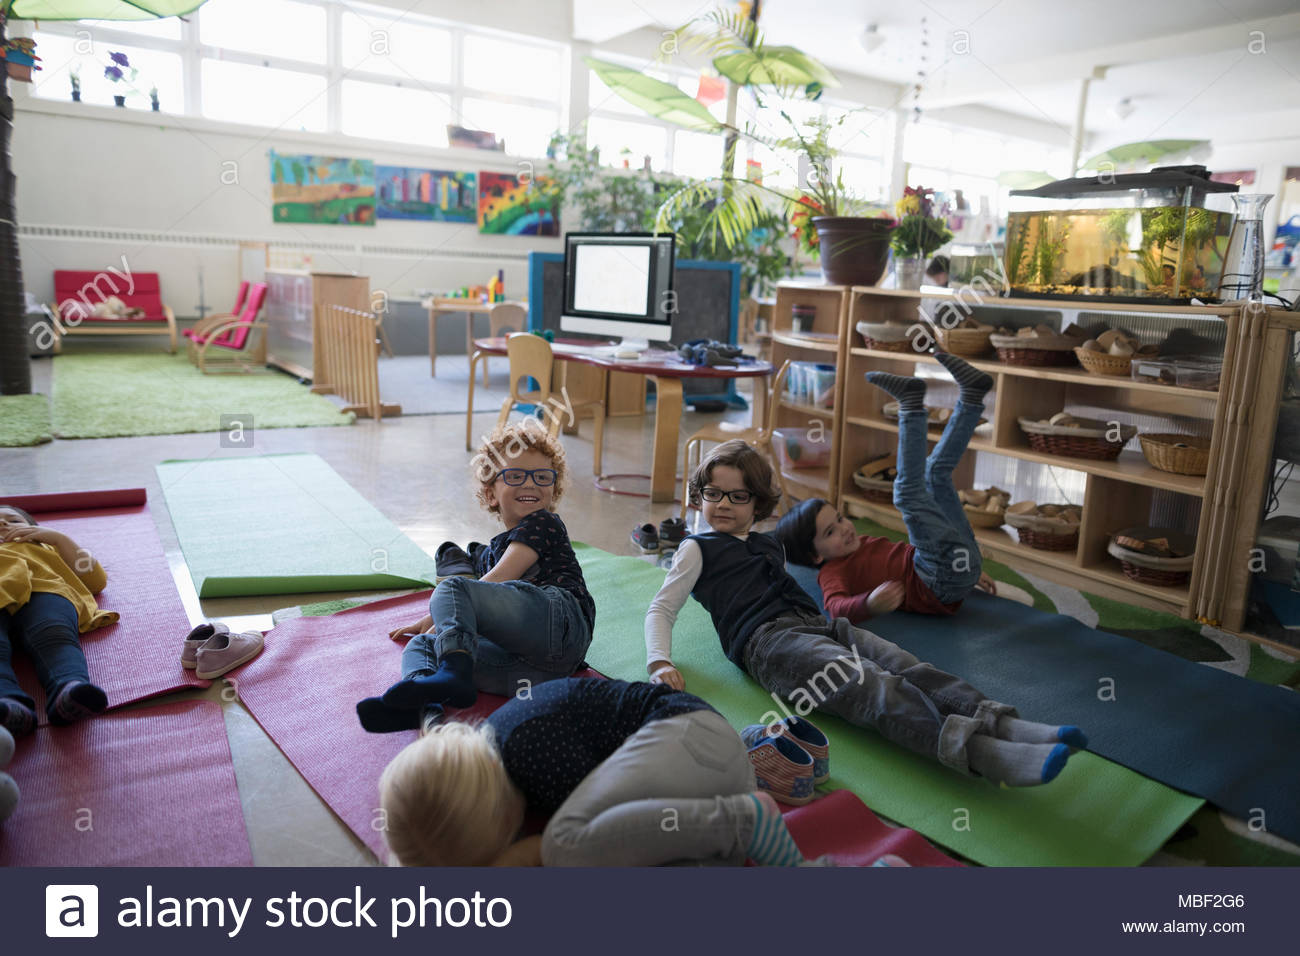 Tired preschool students resting on yoga mats during nap time - Stock Image